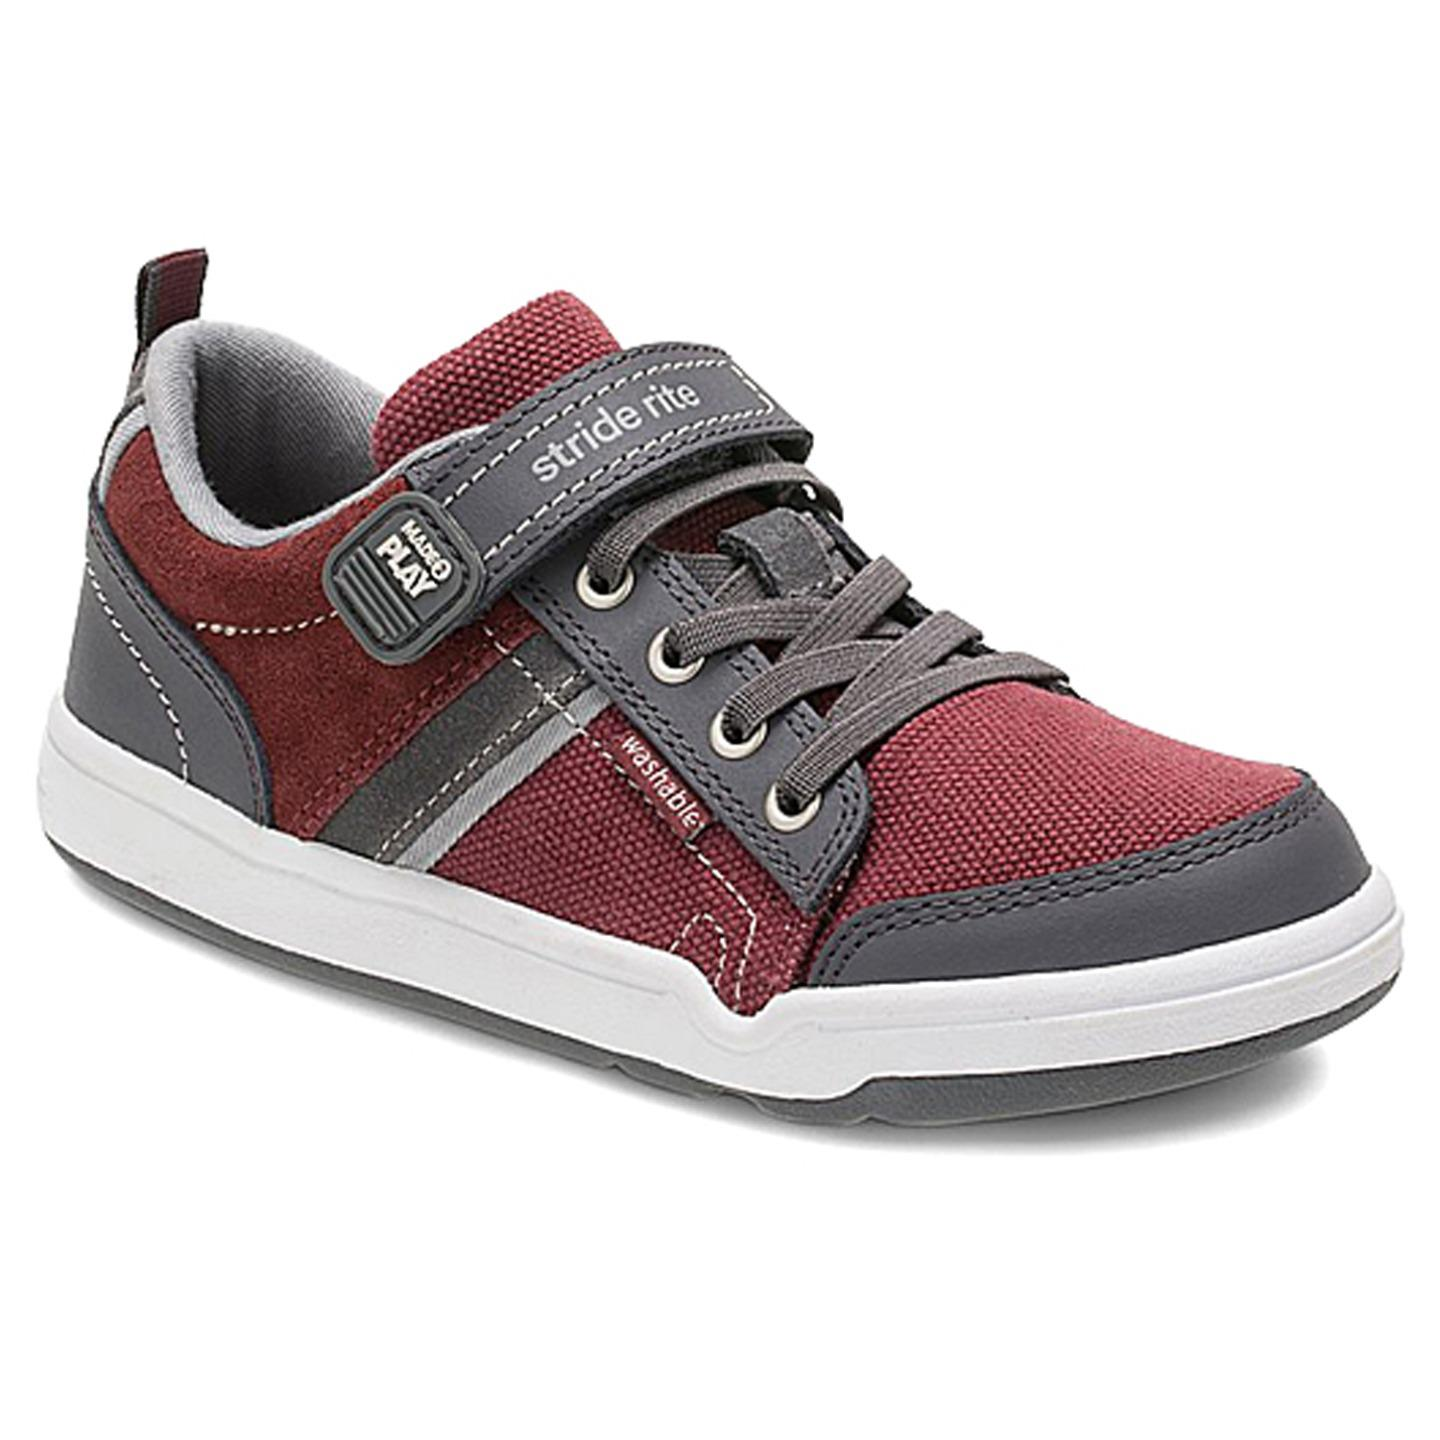 Stride Rite Boys' Made 2 Play Kaleb Sneaker, Oxblood, 12 M Little Kid by Stride Rite